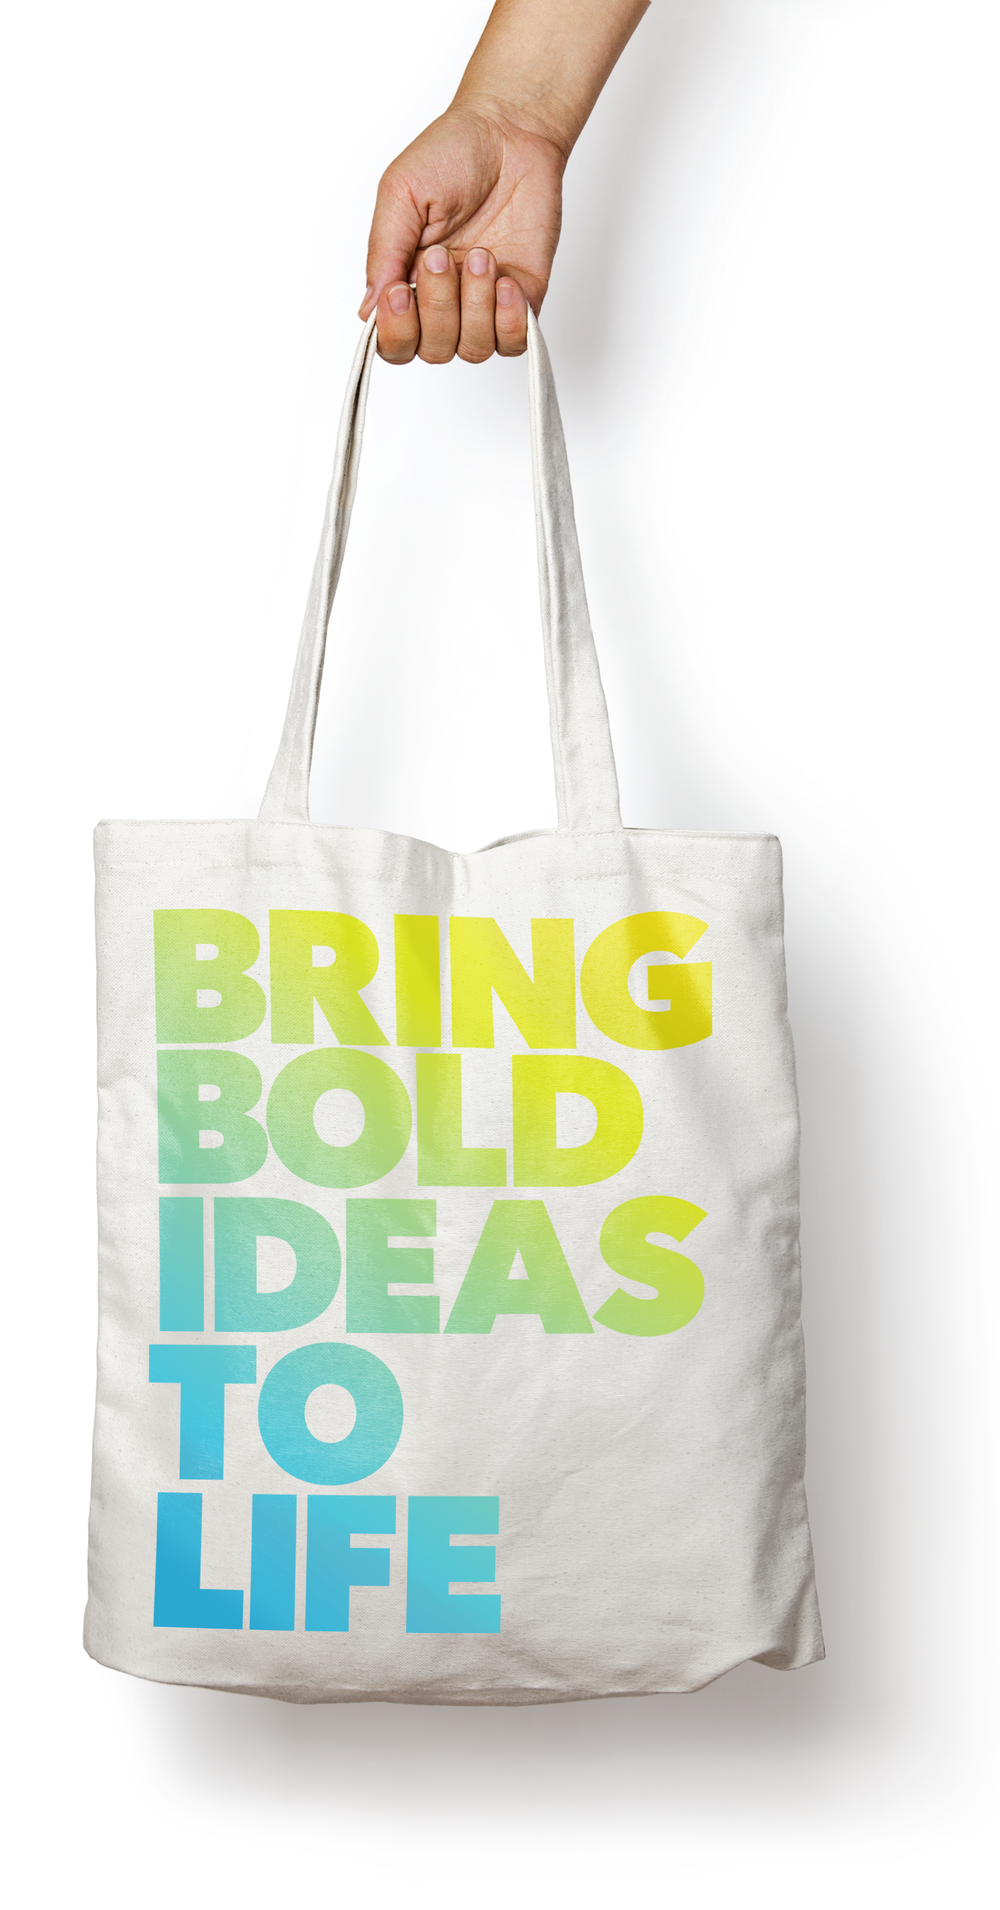 Tides Foundation brand identity logo tote bag design by Good Stuff Partners, a branding firm in San Francisco.